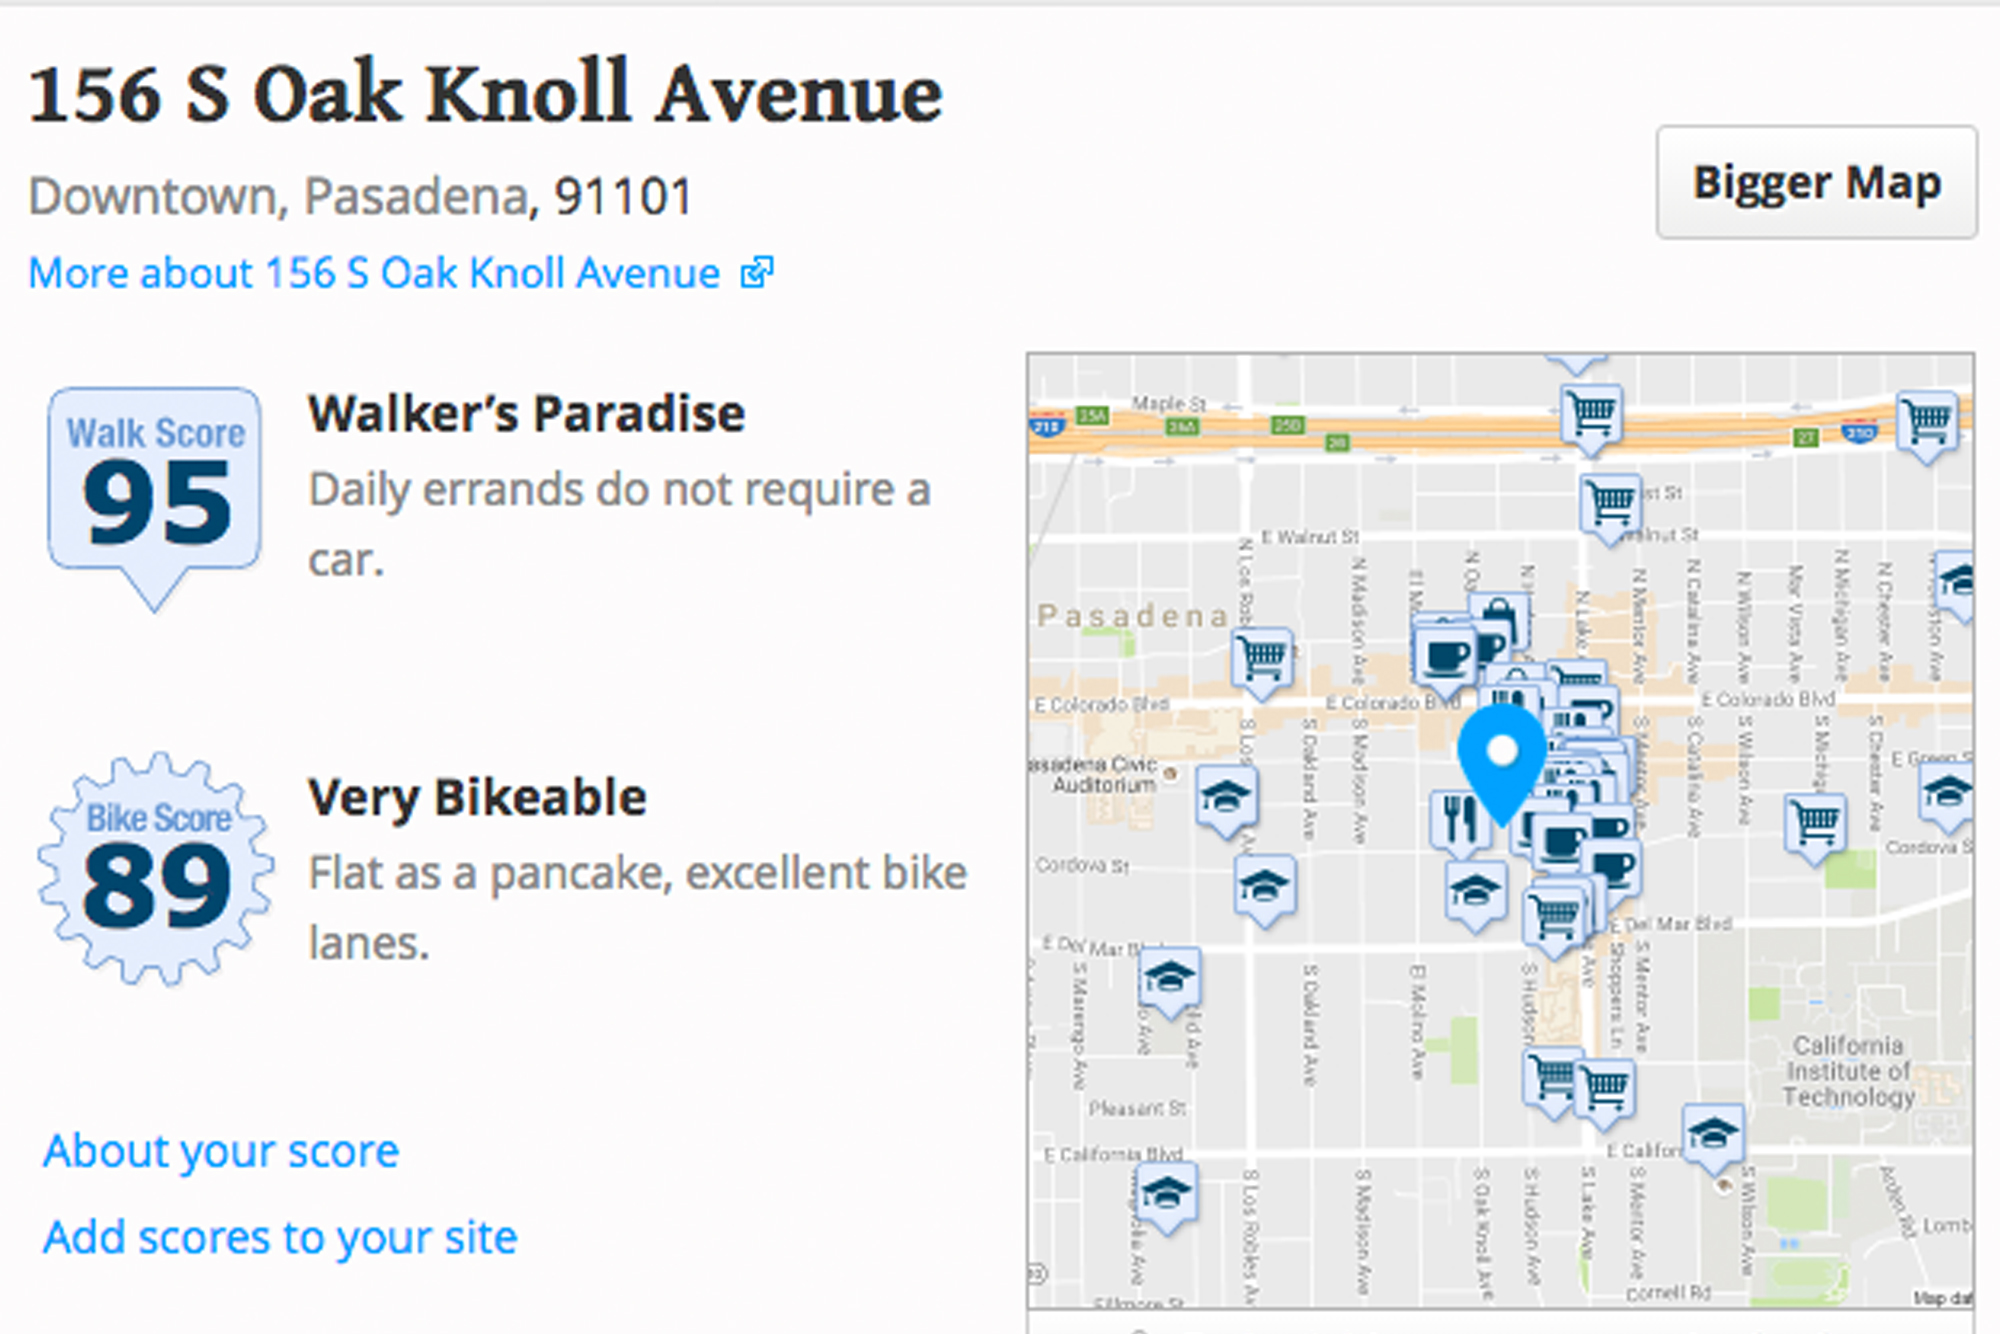 walk-score-156-s-oak-knoll